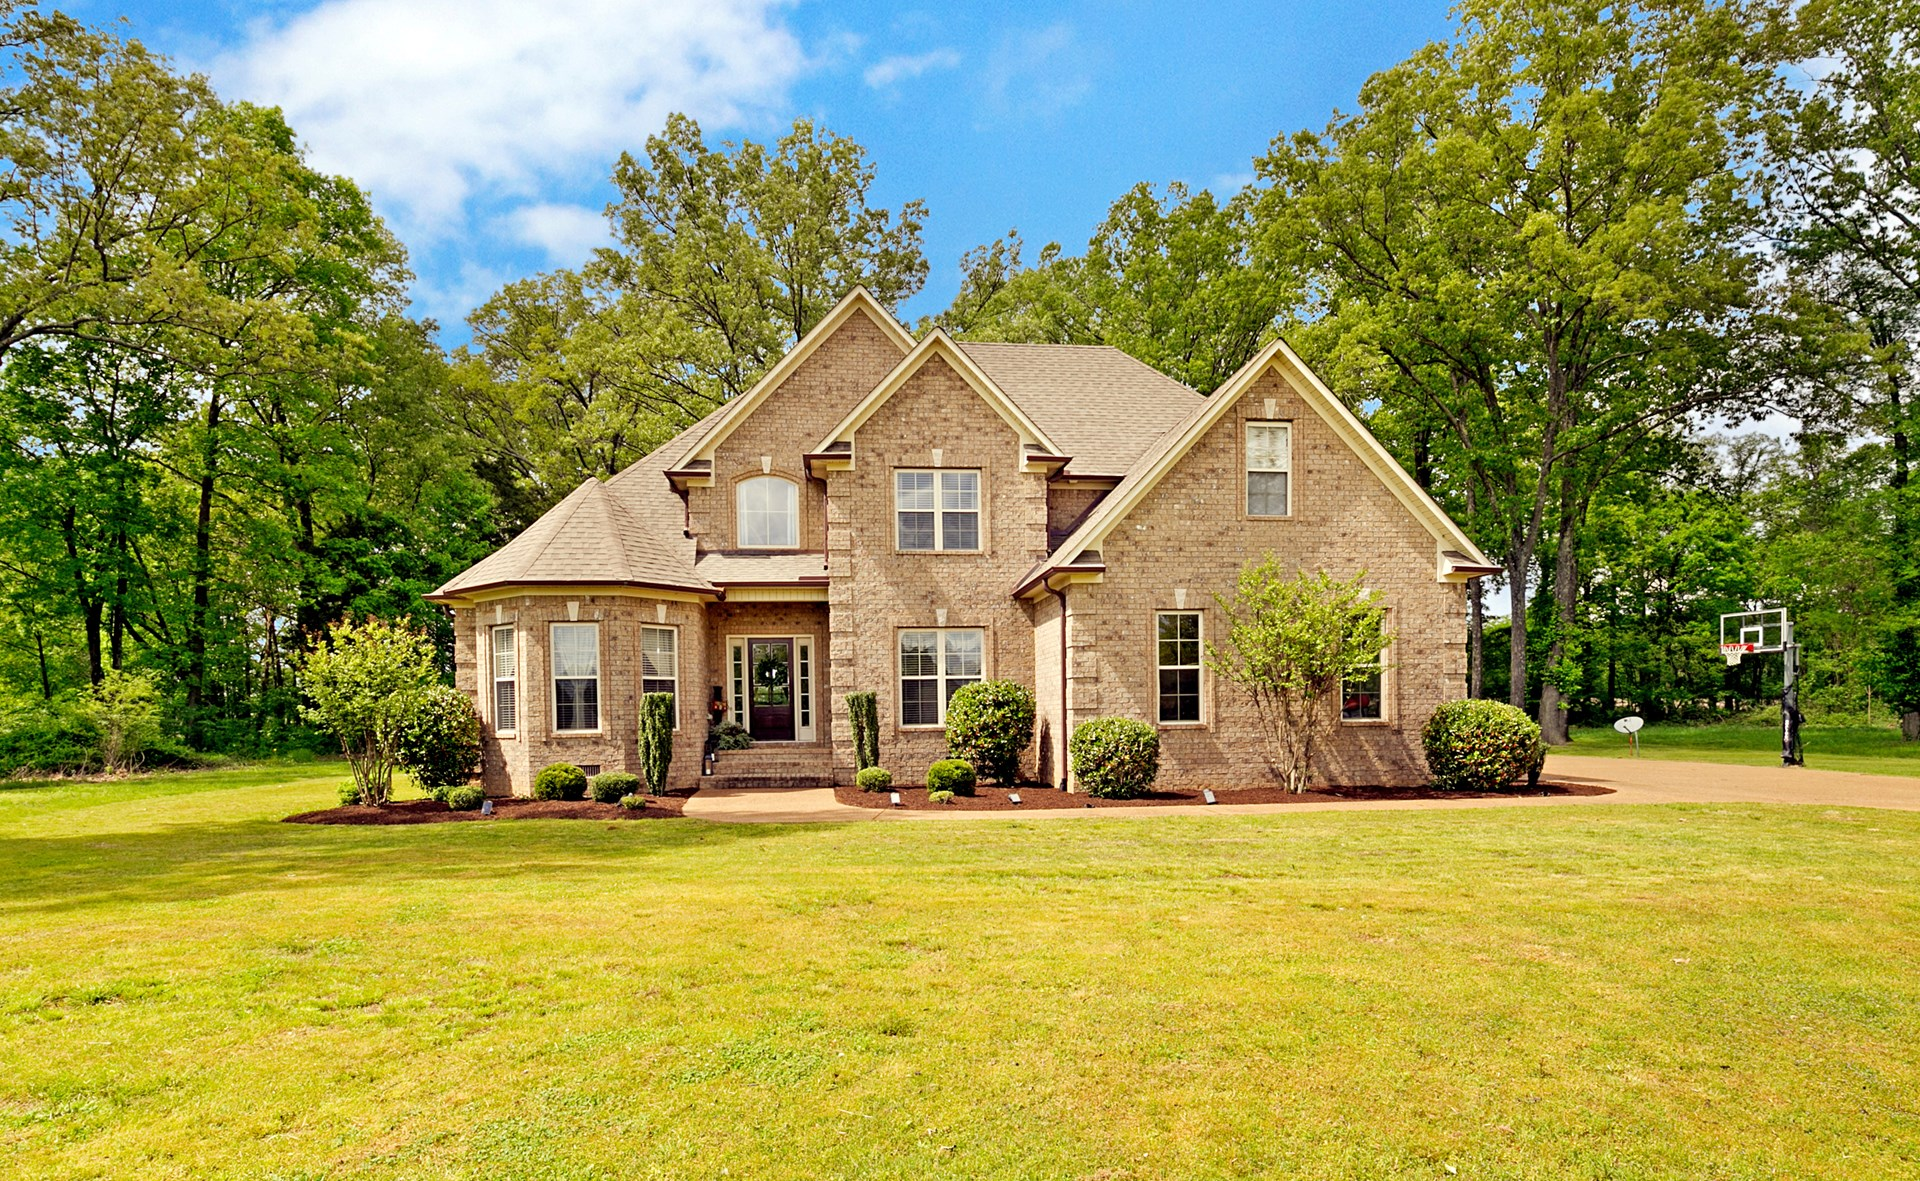 5BR / 3BA Home for Sale in Medina, TN - South Gibson Schools